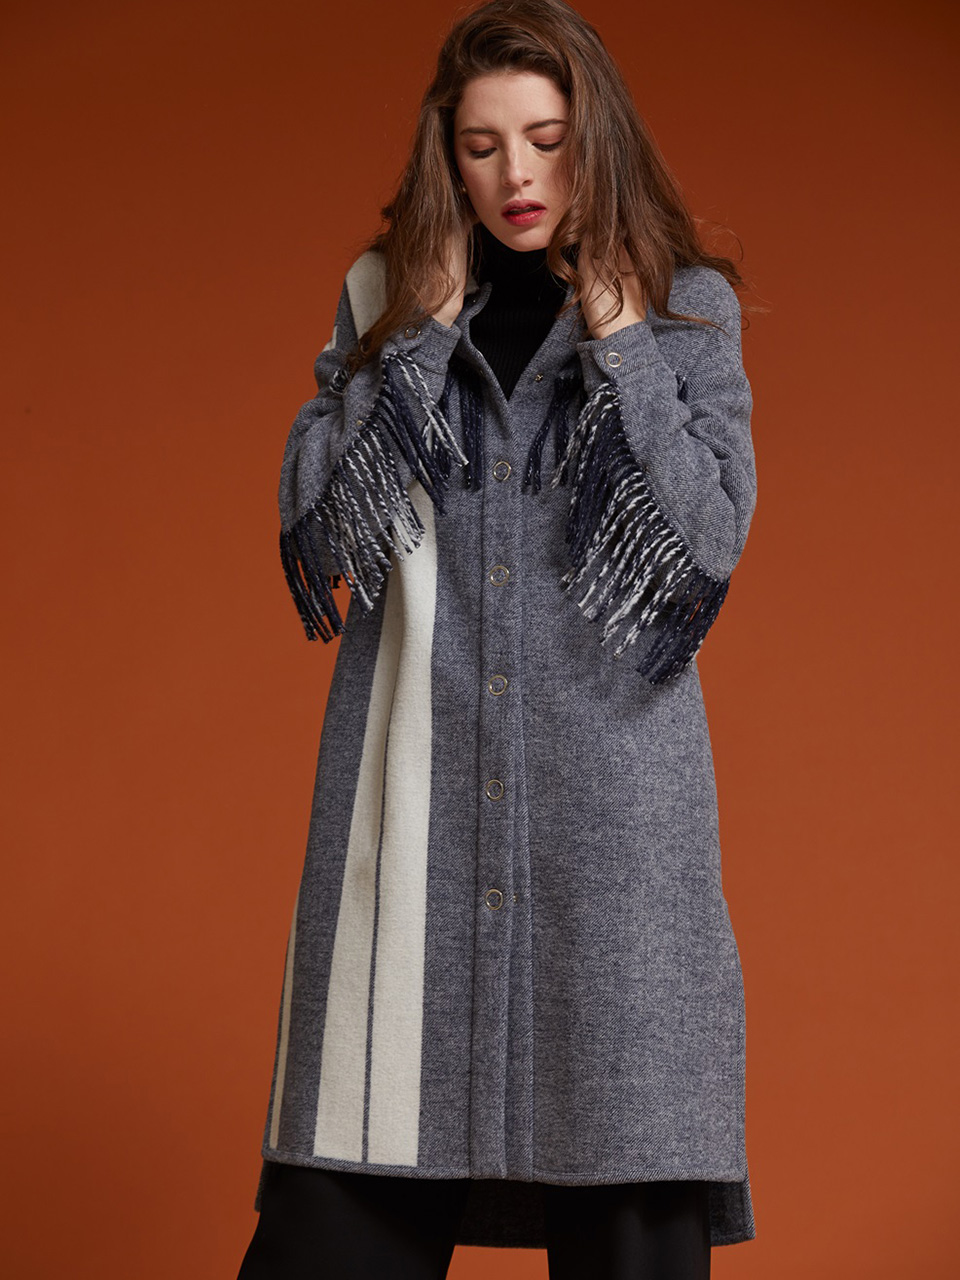 AHIN FRINGE LINE LONG COAT [AR-CO-001]